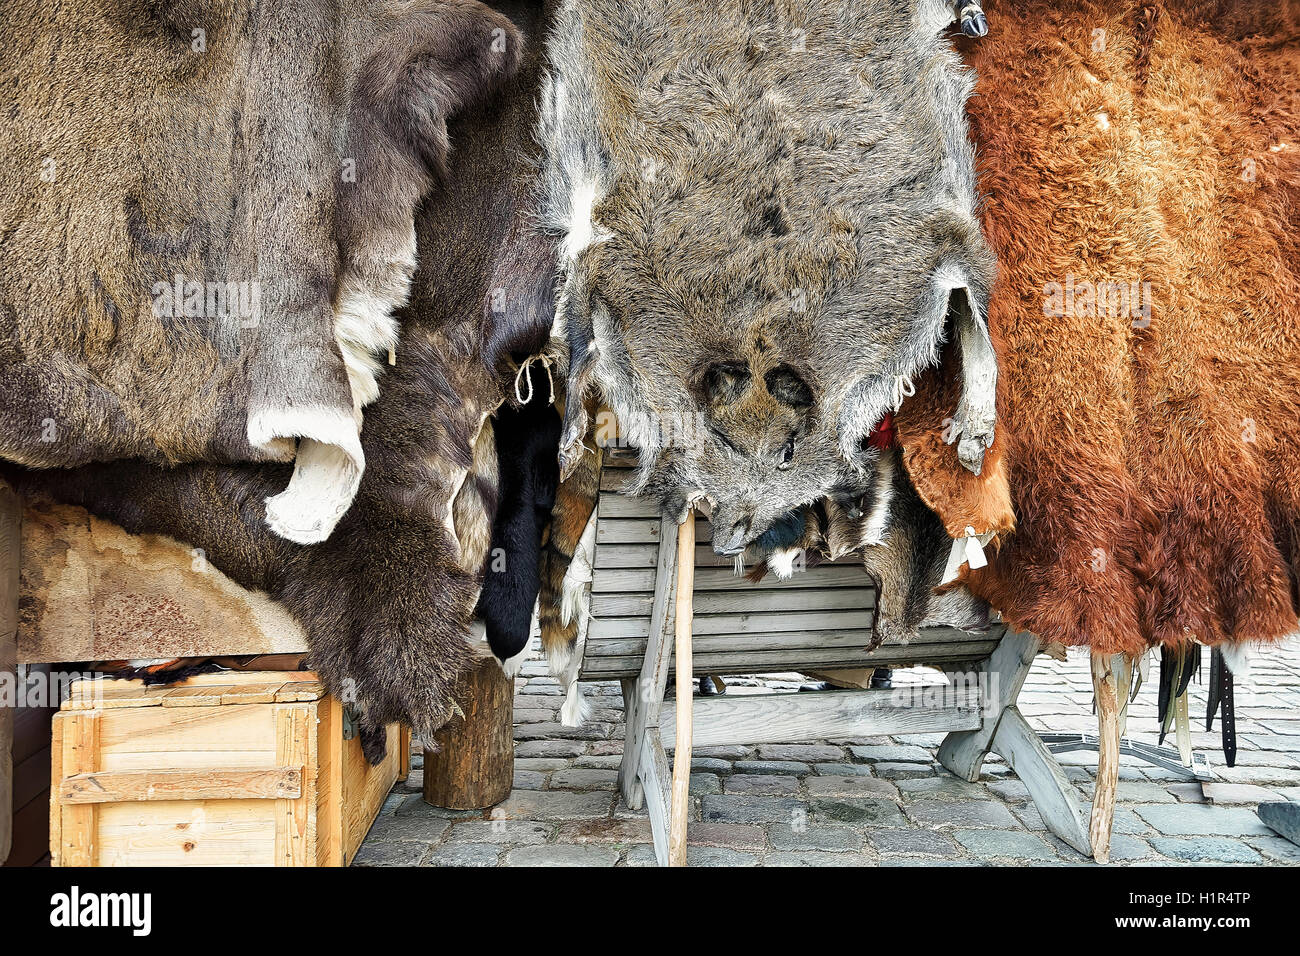 Animal skin on the display on sale at the Christmas Market in Riga, Latvia. The market is full of various goods, - Stock Image